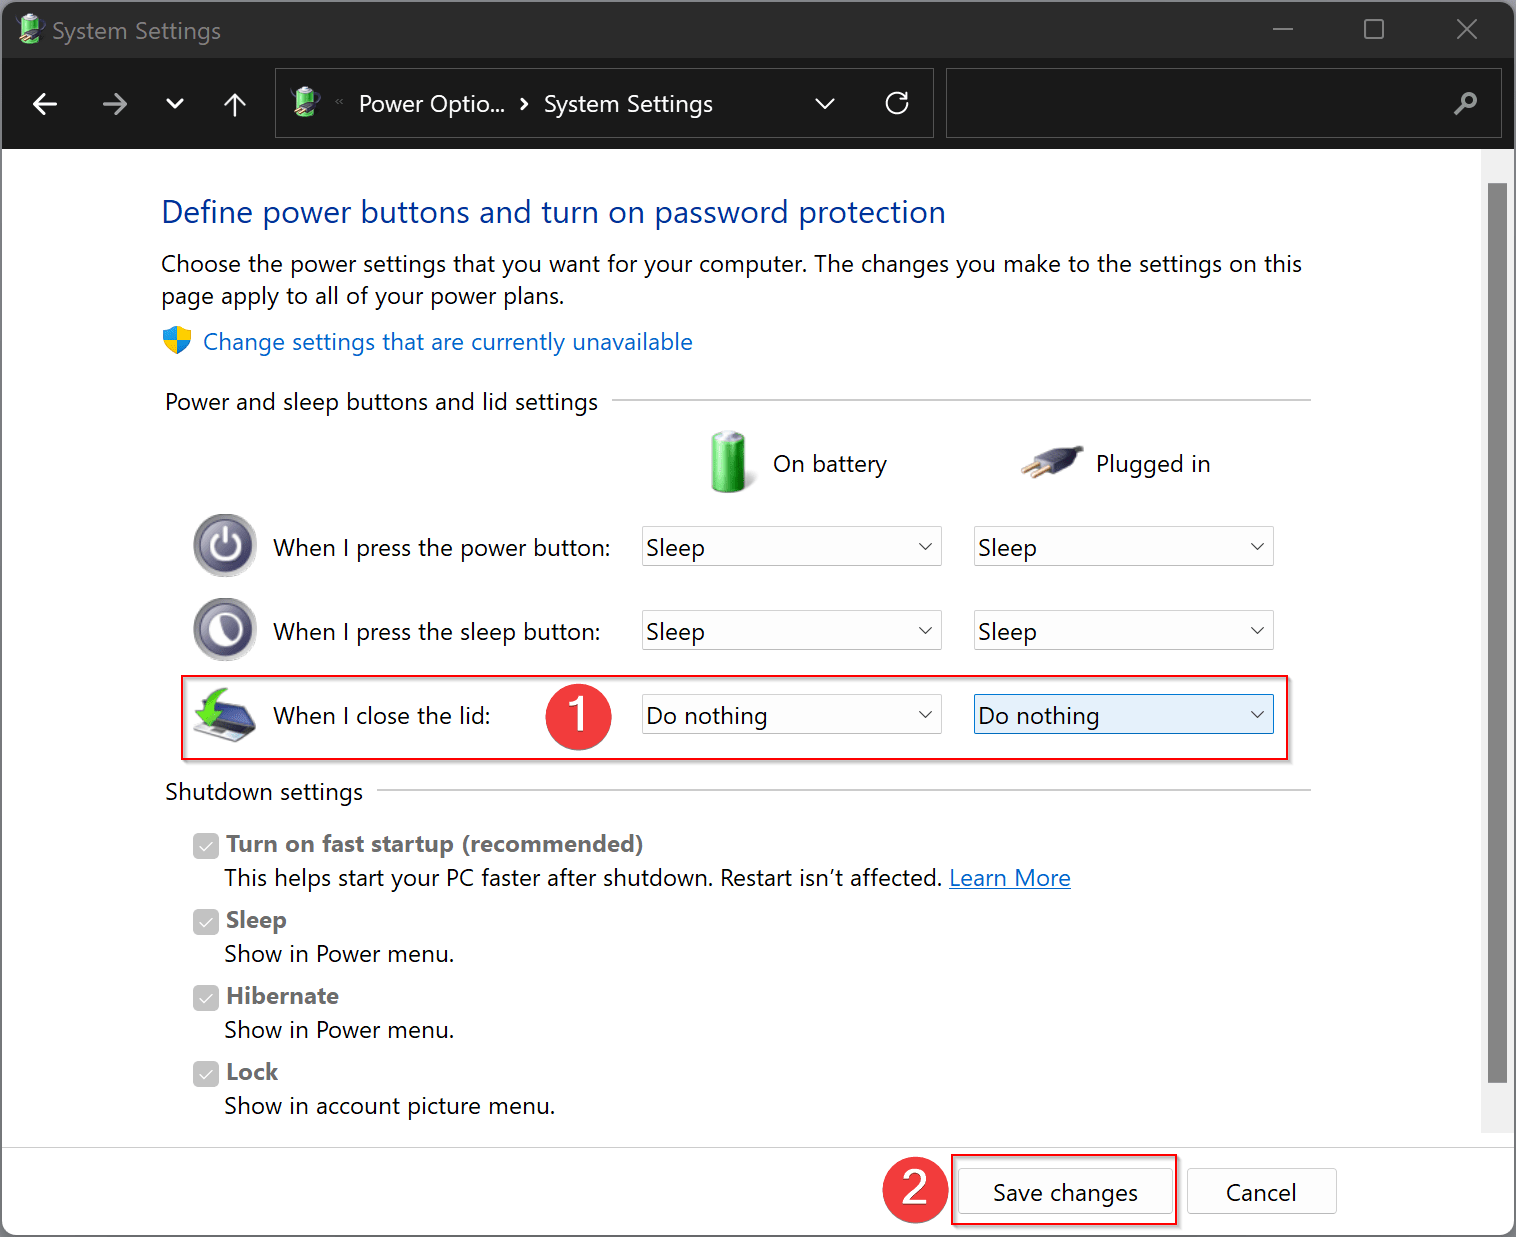 How to Close Laptop Lid on Windows 10 and Still Use an External Monitor?